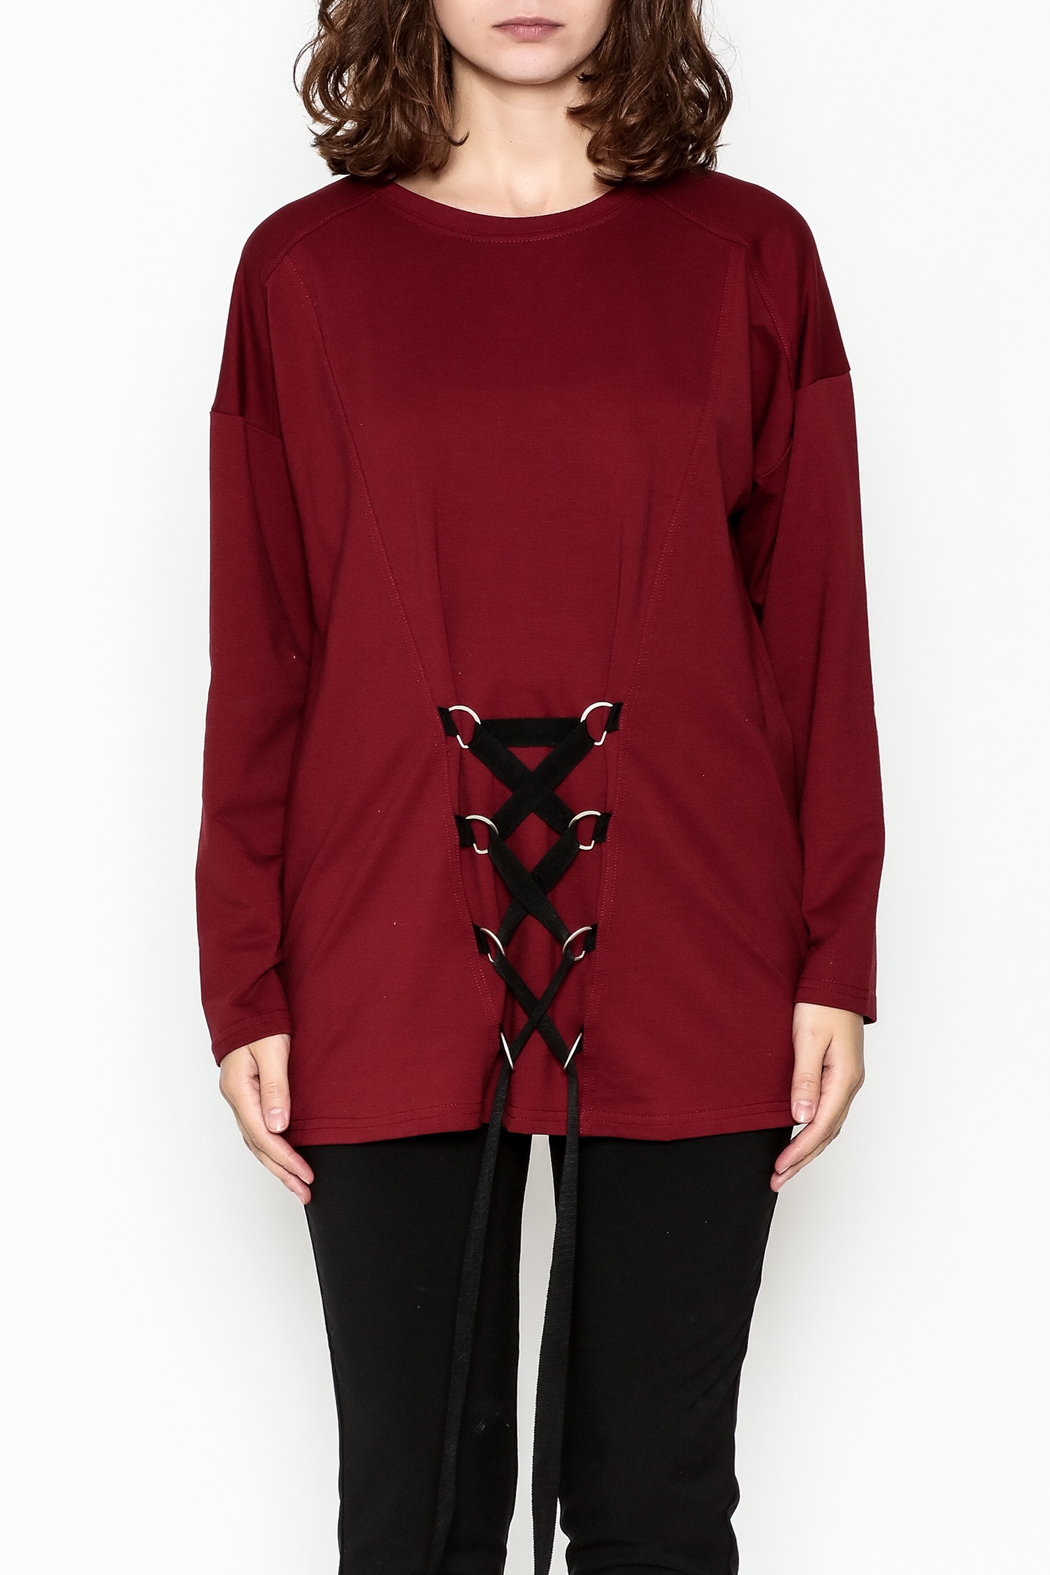 Very J Drawstring Accent Top - Front Full Image